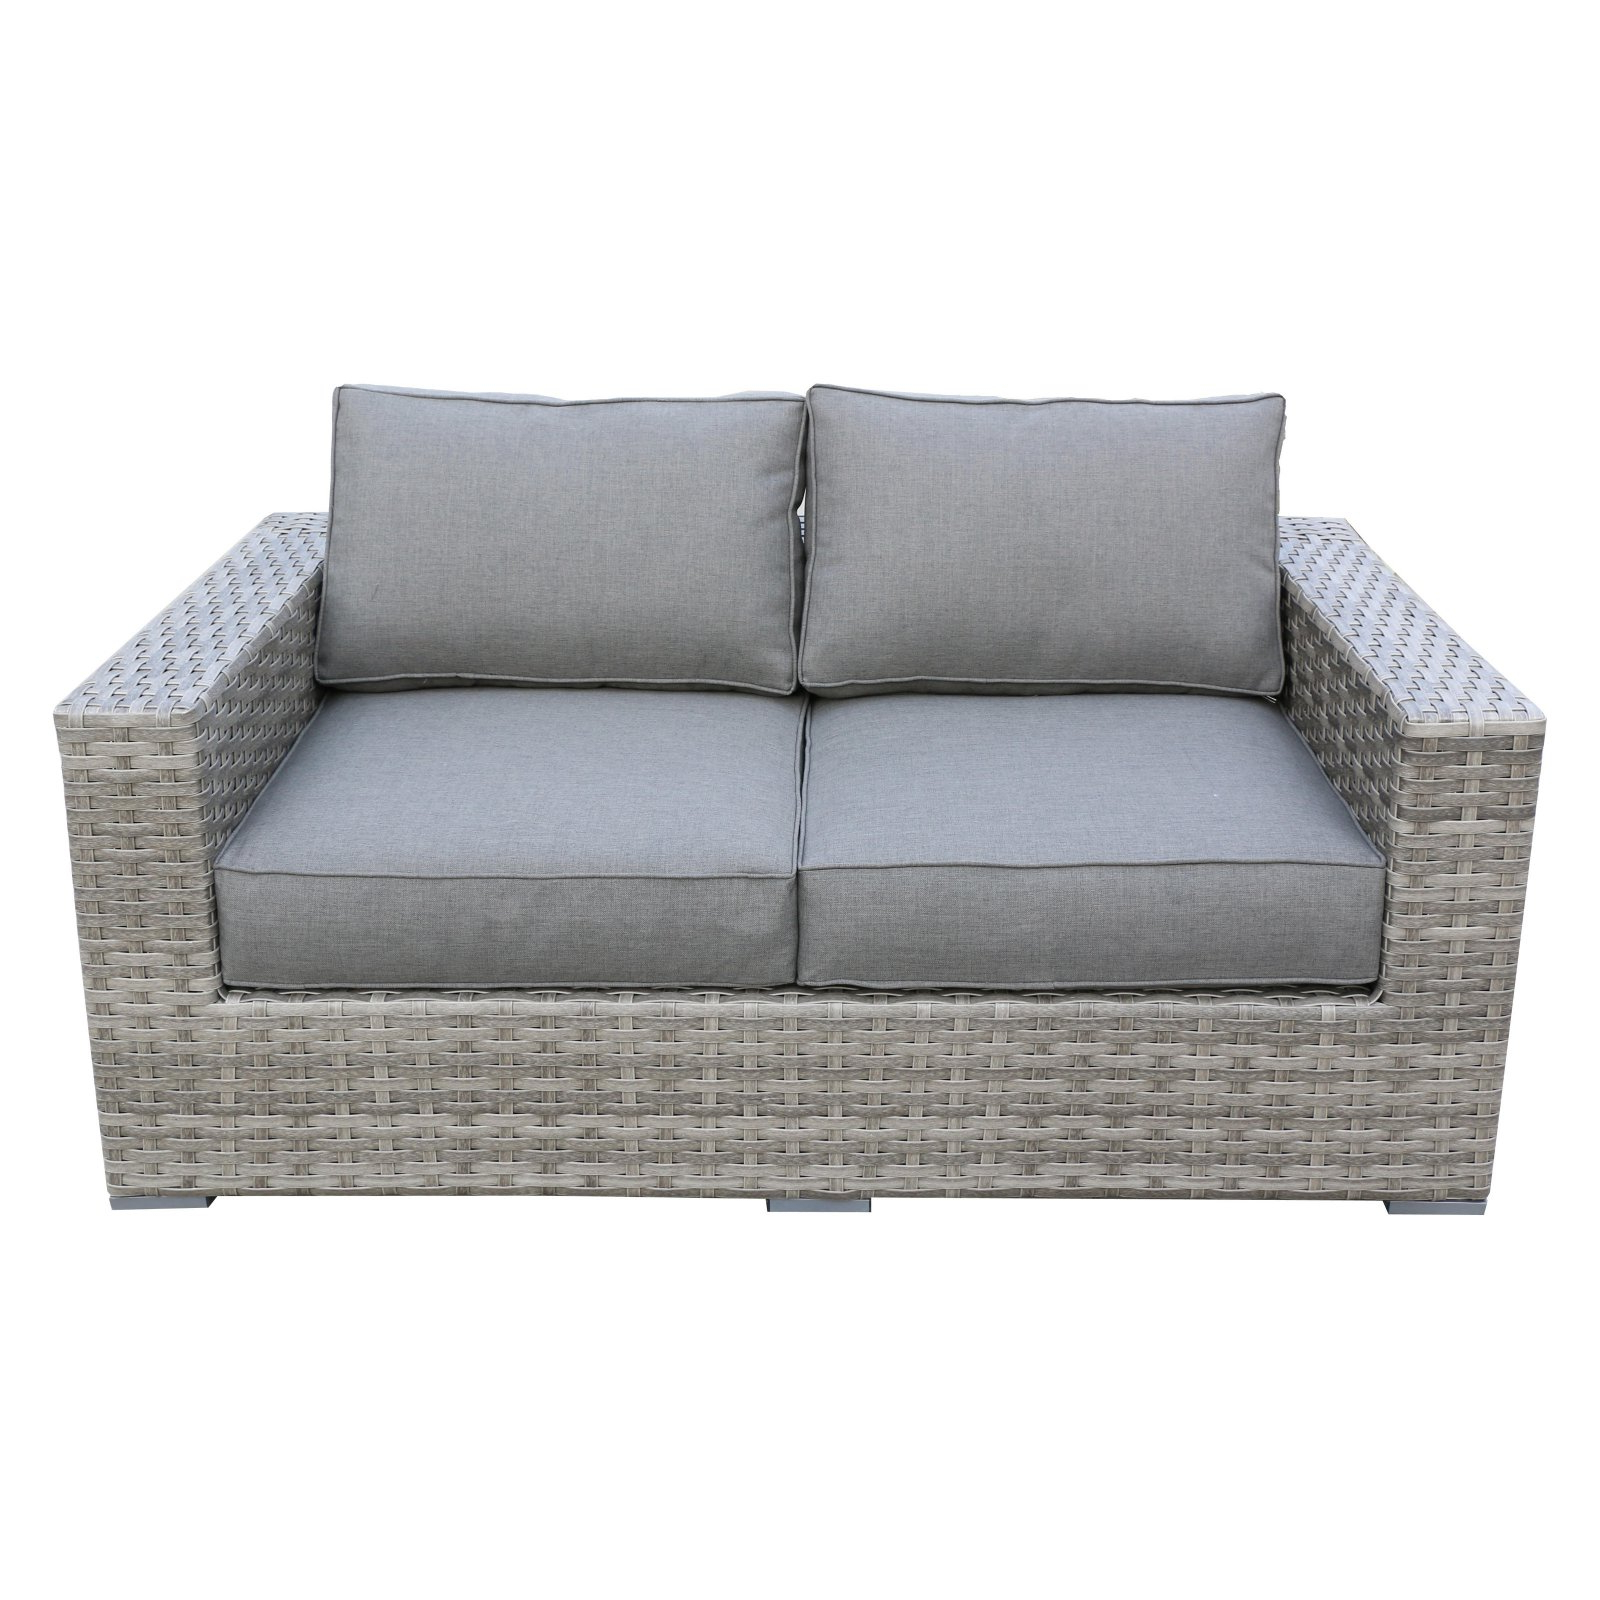 Outdoor Teva Patio Bali Wicker Patio Loveseat In 2019 Intended For 2020 Keever Patio Sofas With Sunbrella Cushions (View 16 of 20)